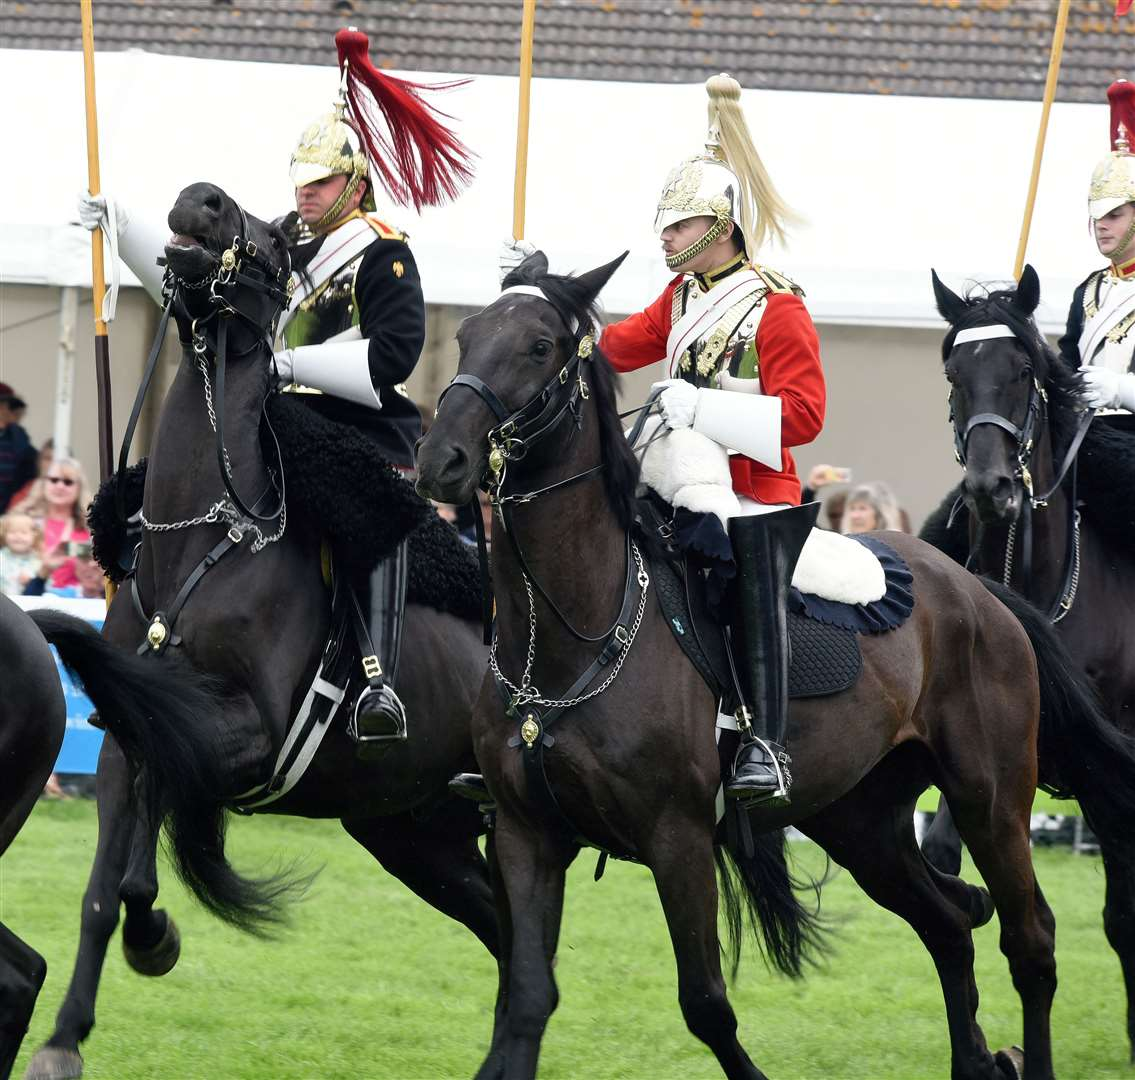 The Royal Norfolk Show Norwich, Day One Wednesday 26th June 2019..Scenes from the Showground..Musical Ride of the Household Cavalry, a rider falls from his horse in the Grand Ring. (13046972)